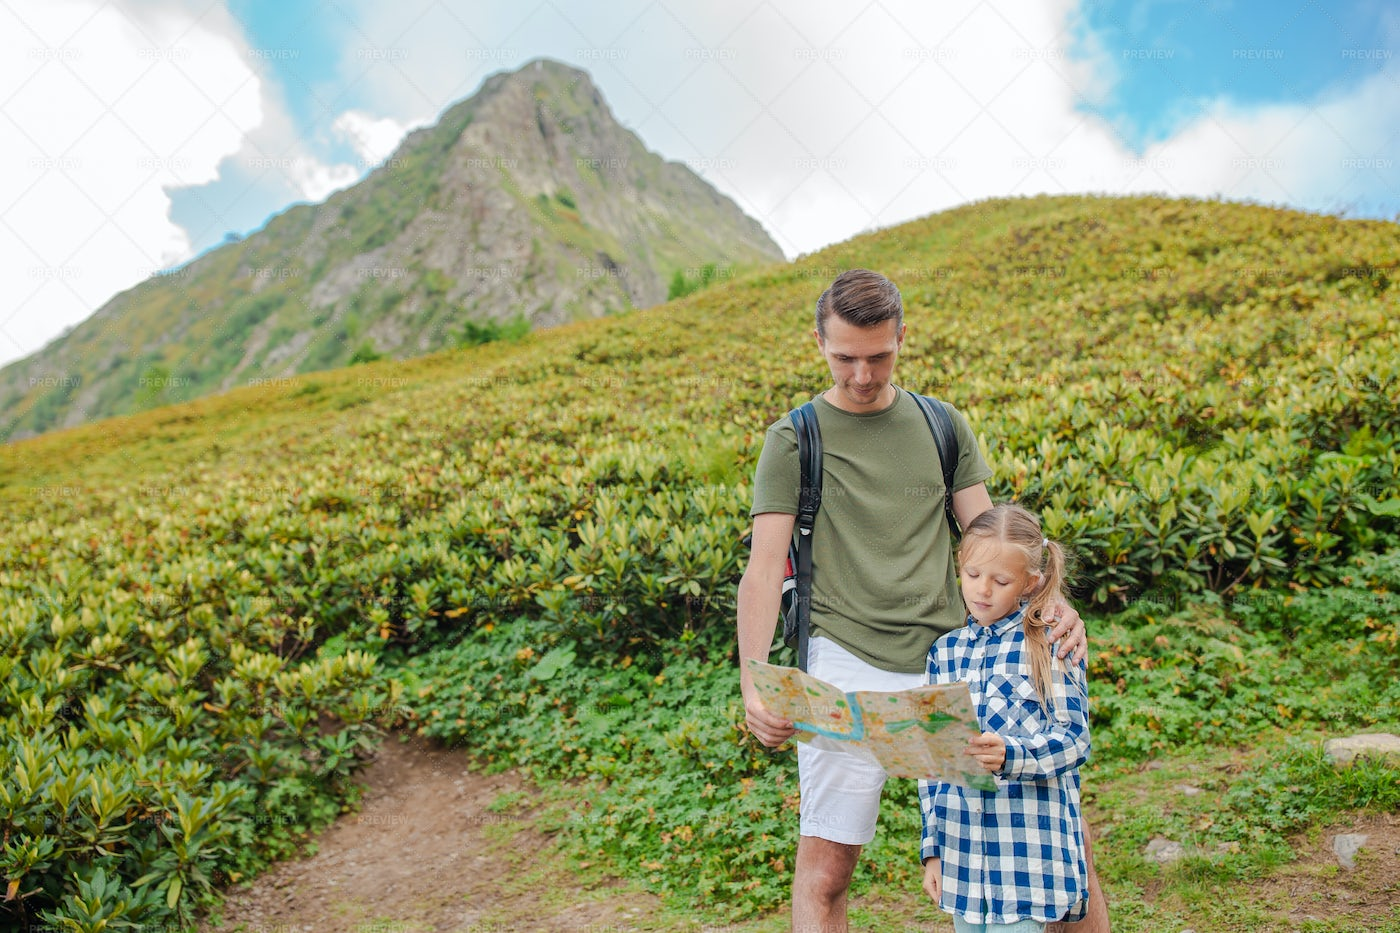 Dad And Little Girl In The Mountains: Stock Photos